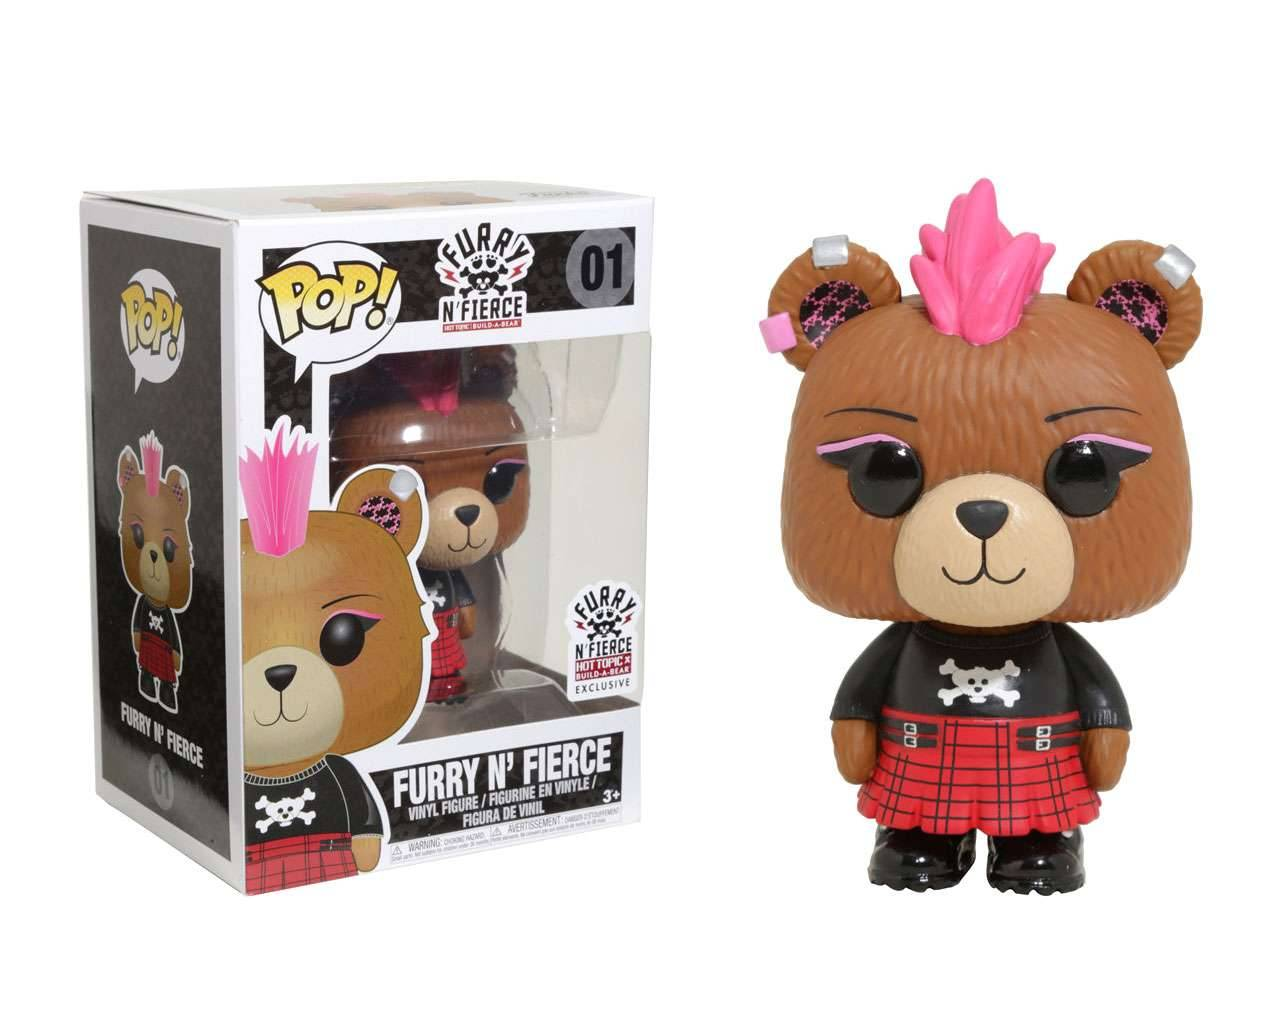 Furry n' Fierce Pop! Vinyl